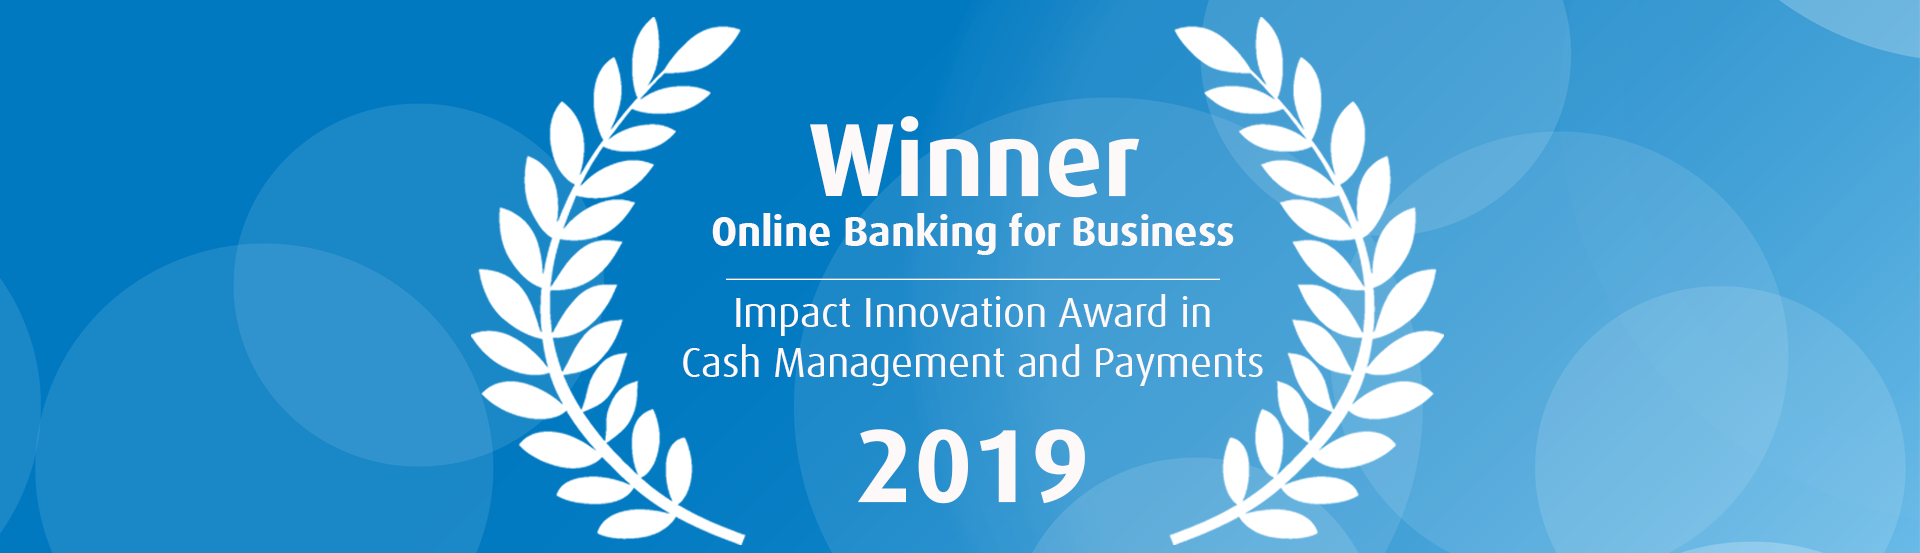 Impact Innovation Award in Cash Management and Payments 2019